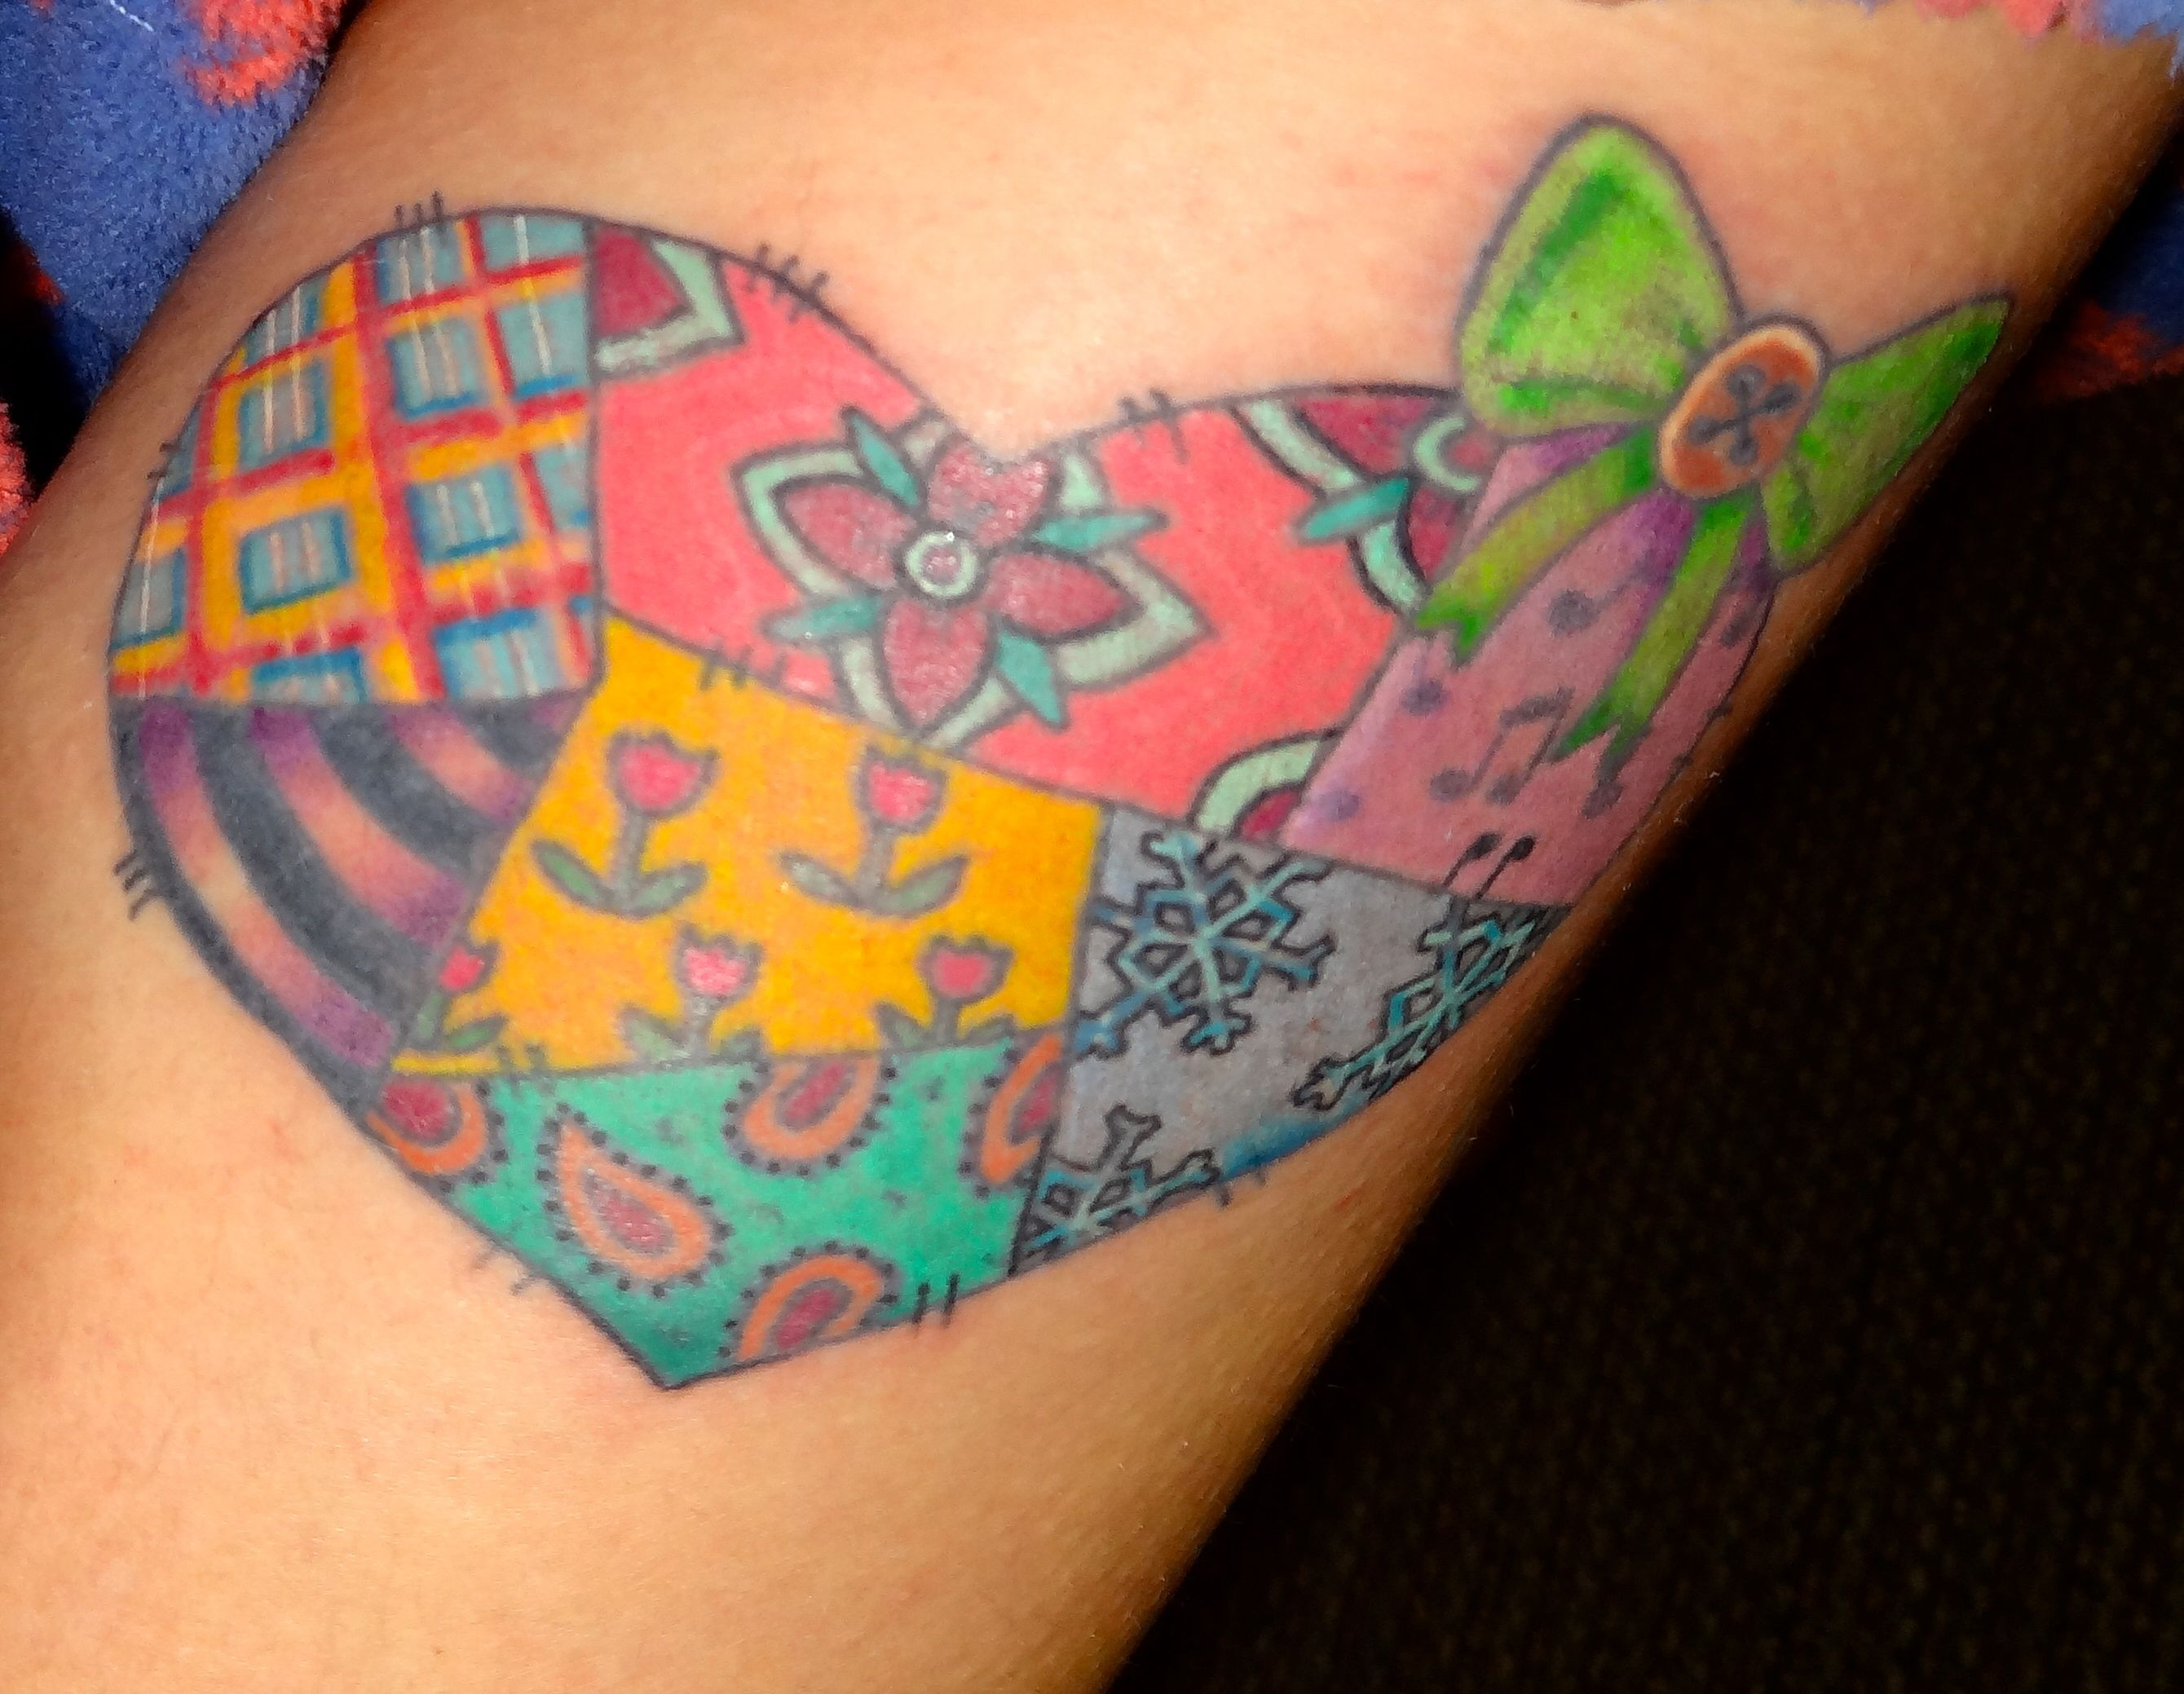 Quilt Patch Tattoo & 55 Best Sewing/Quilting/Crafting Tattoos ... : quilt patch tattoo - Adamdwight.com